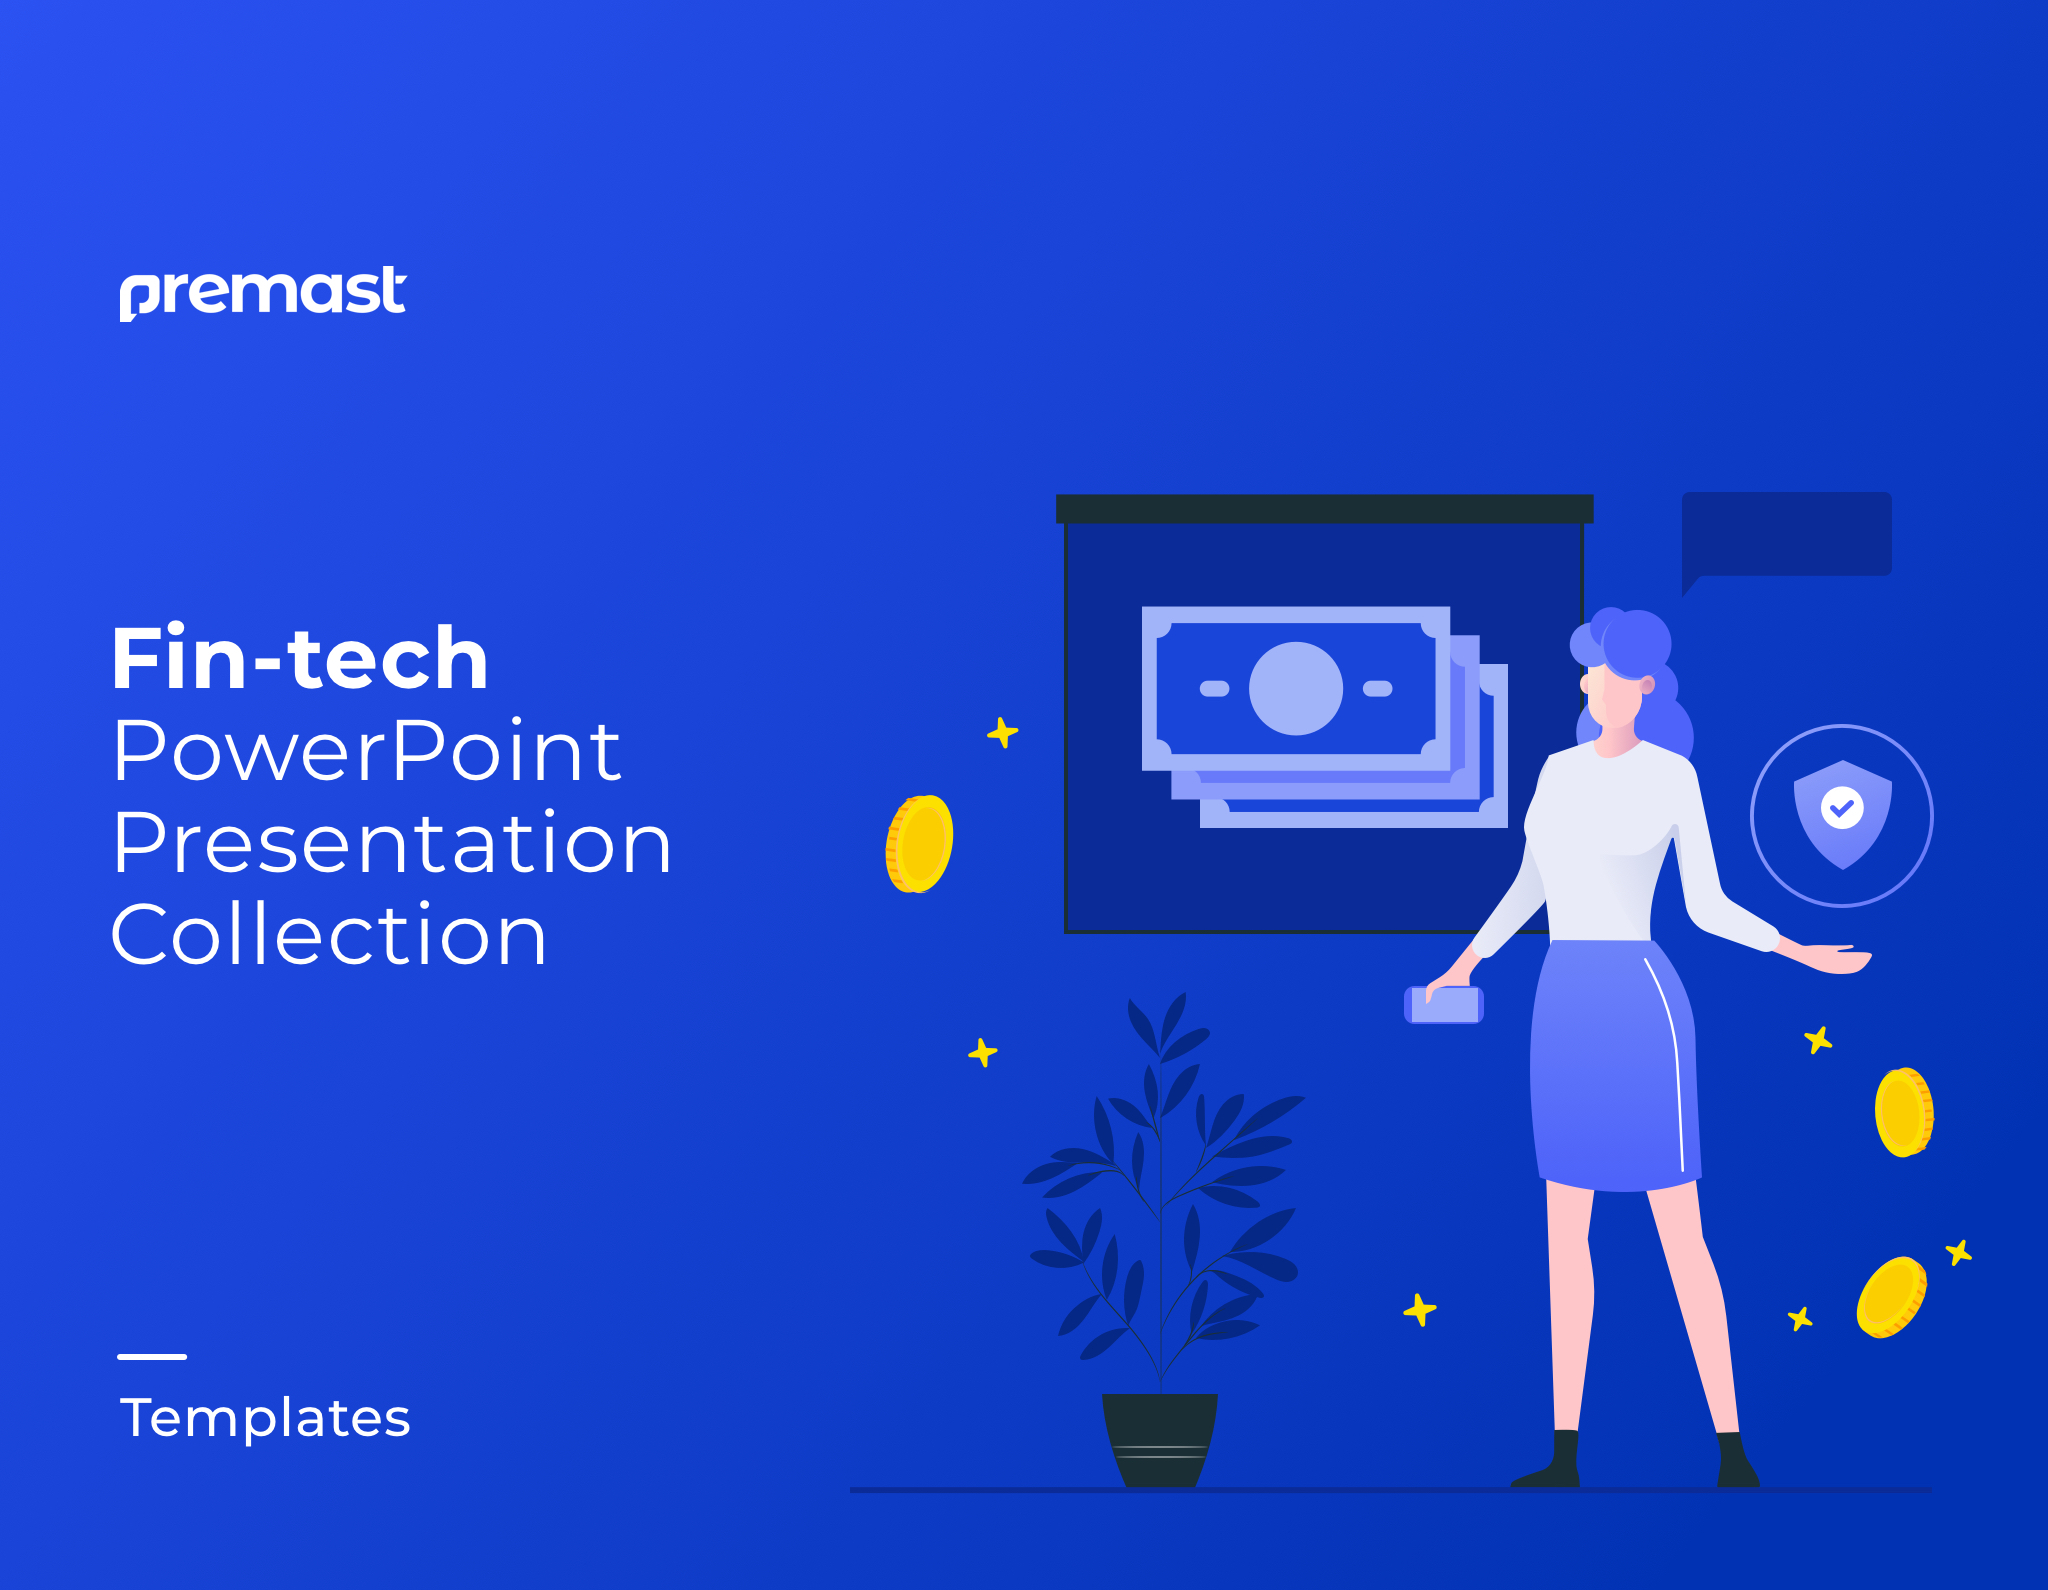 Top Fintech PowerPoint Templates Professional and Modern